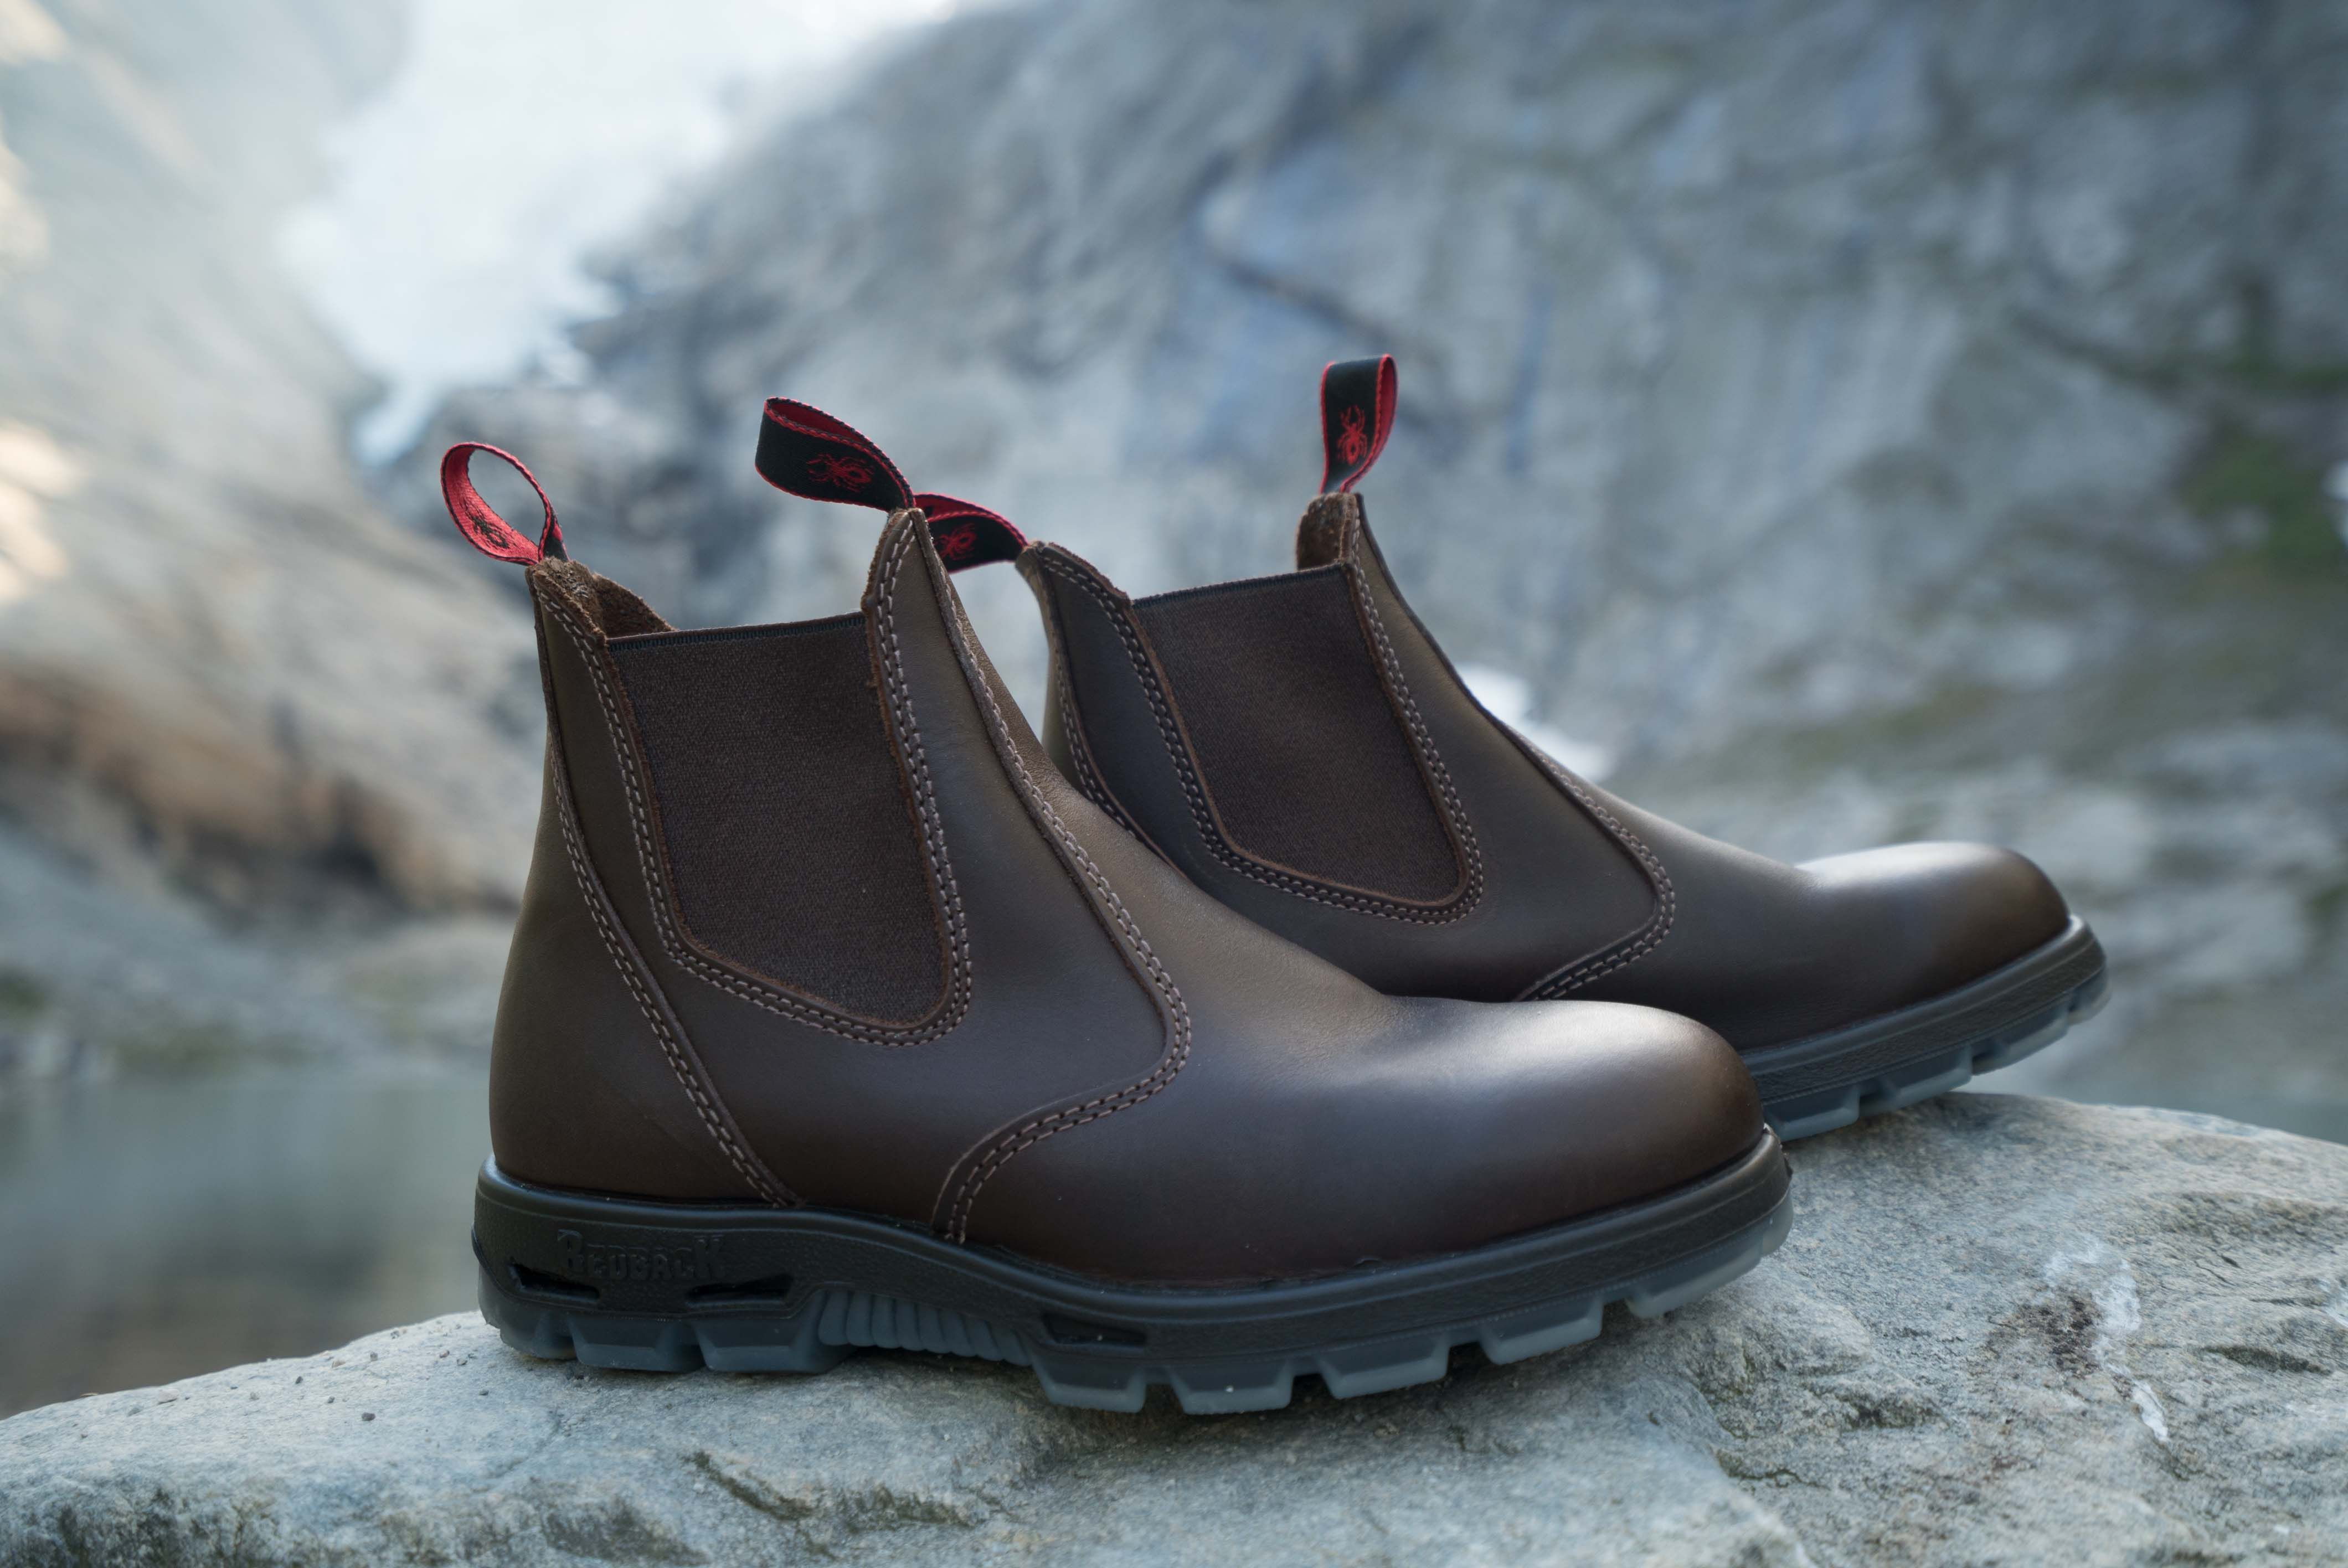 Genuine Australian Made Redback Boots Made In Australia But Comfortable Anywhere Available From Us Here In The Uk Redback Boots Boots Shoe Boots